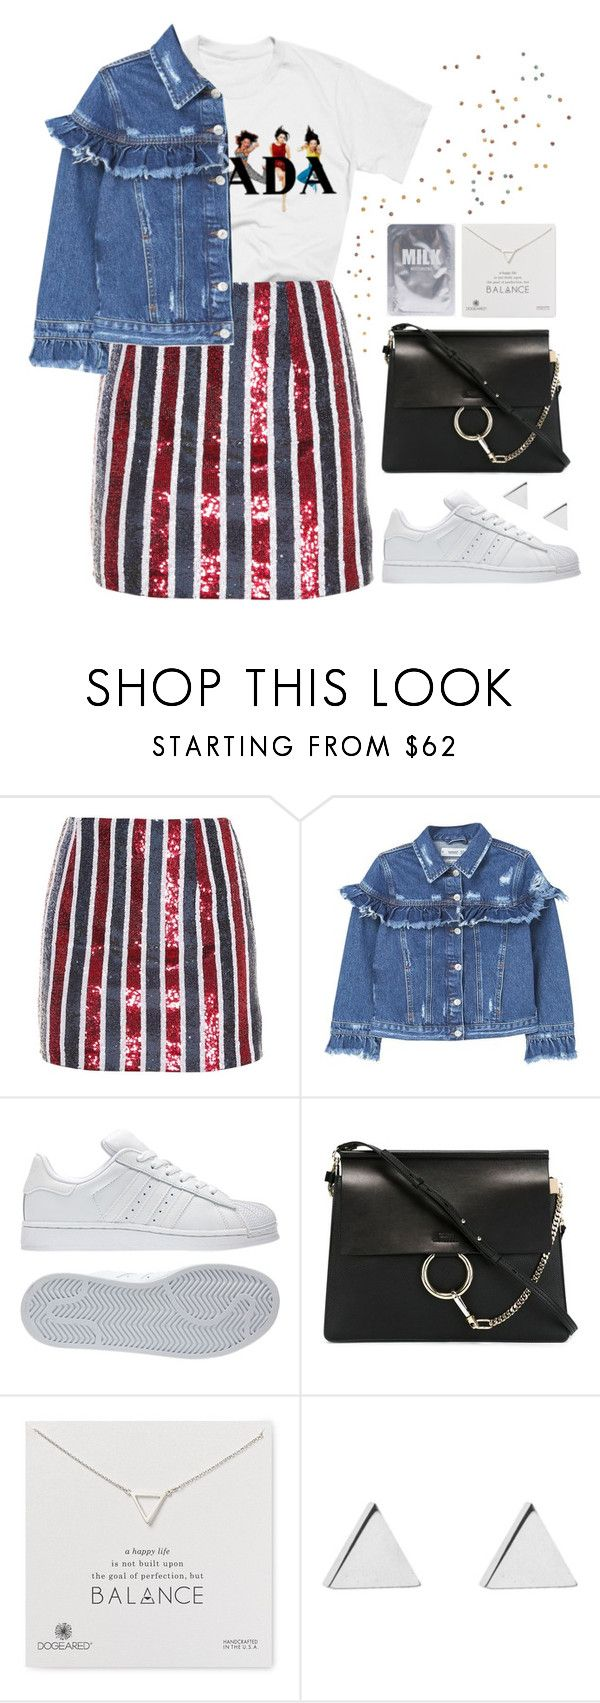 """grown child"" by s-ensible ❤ liked on Polyvore featuring Giamba, MANGO, adidas, Chloé, Dogeared and Jennifer Meyer Jewelry"